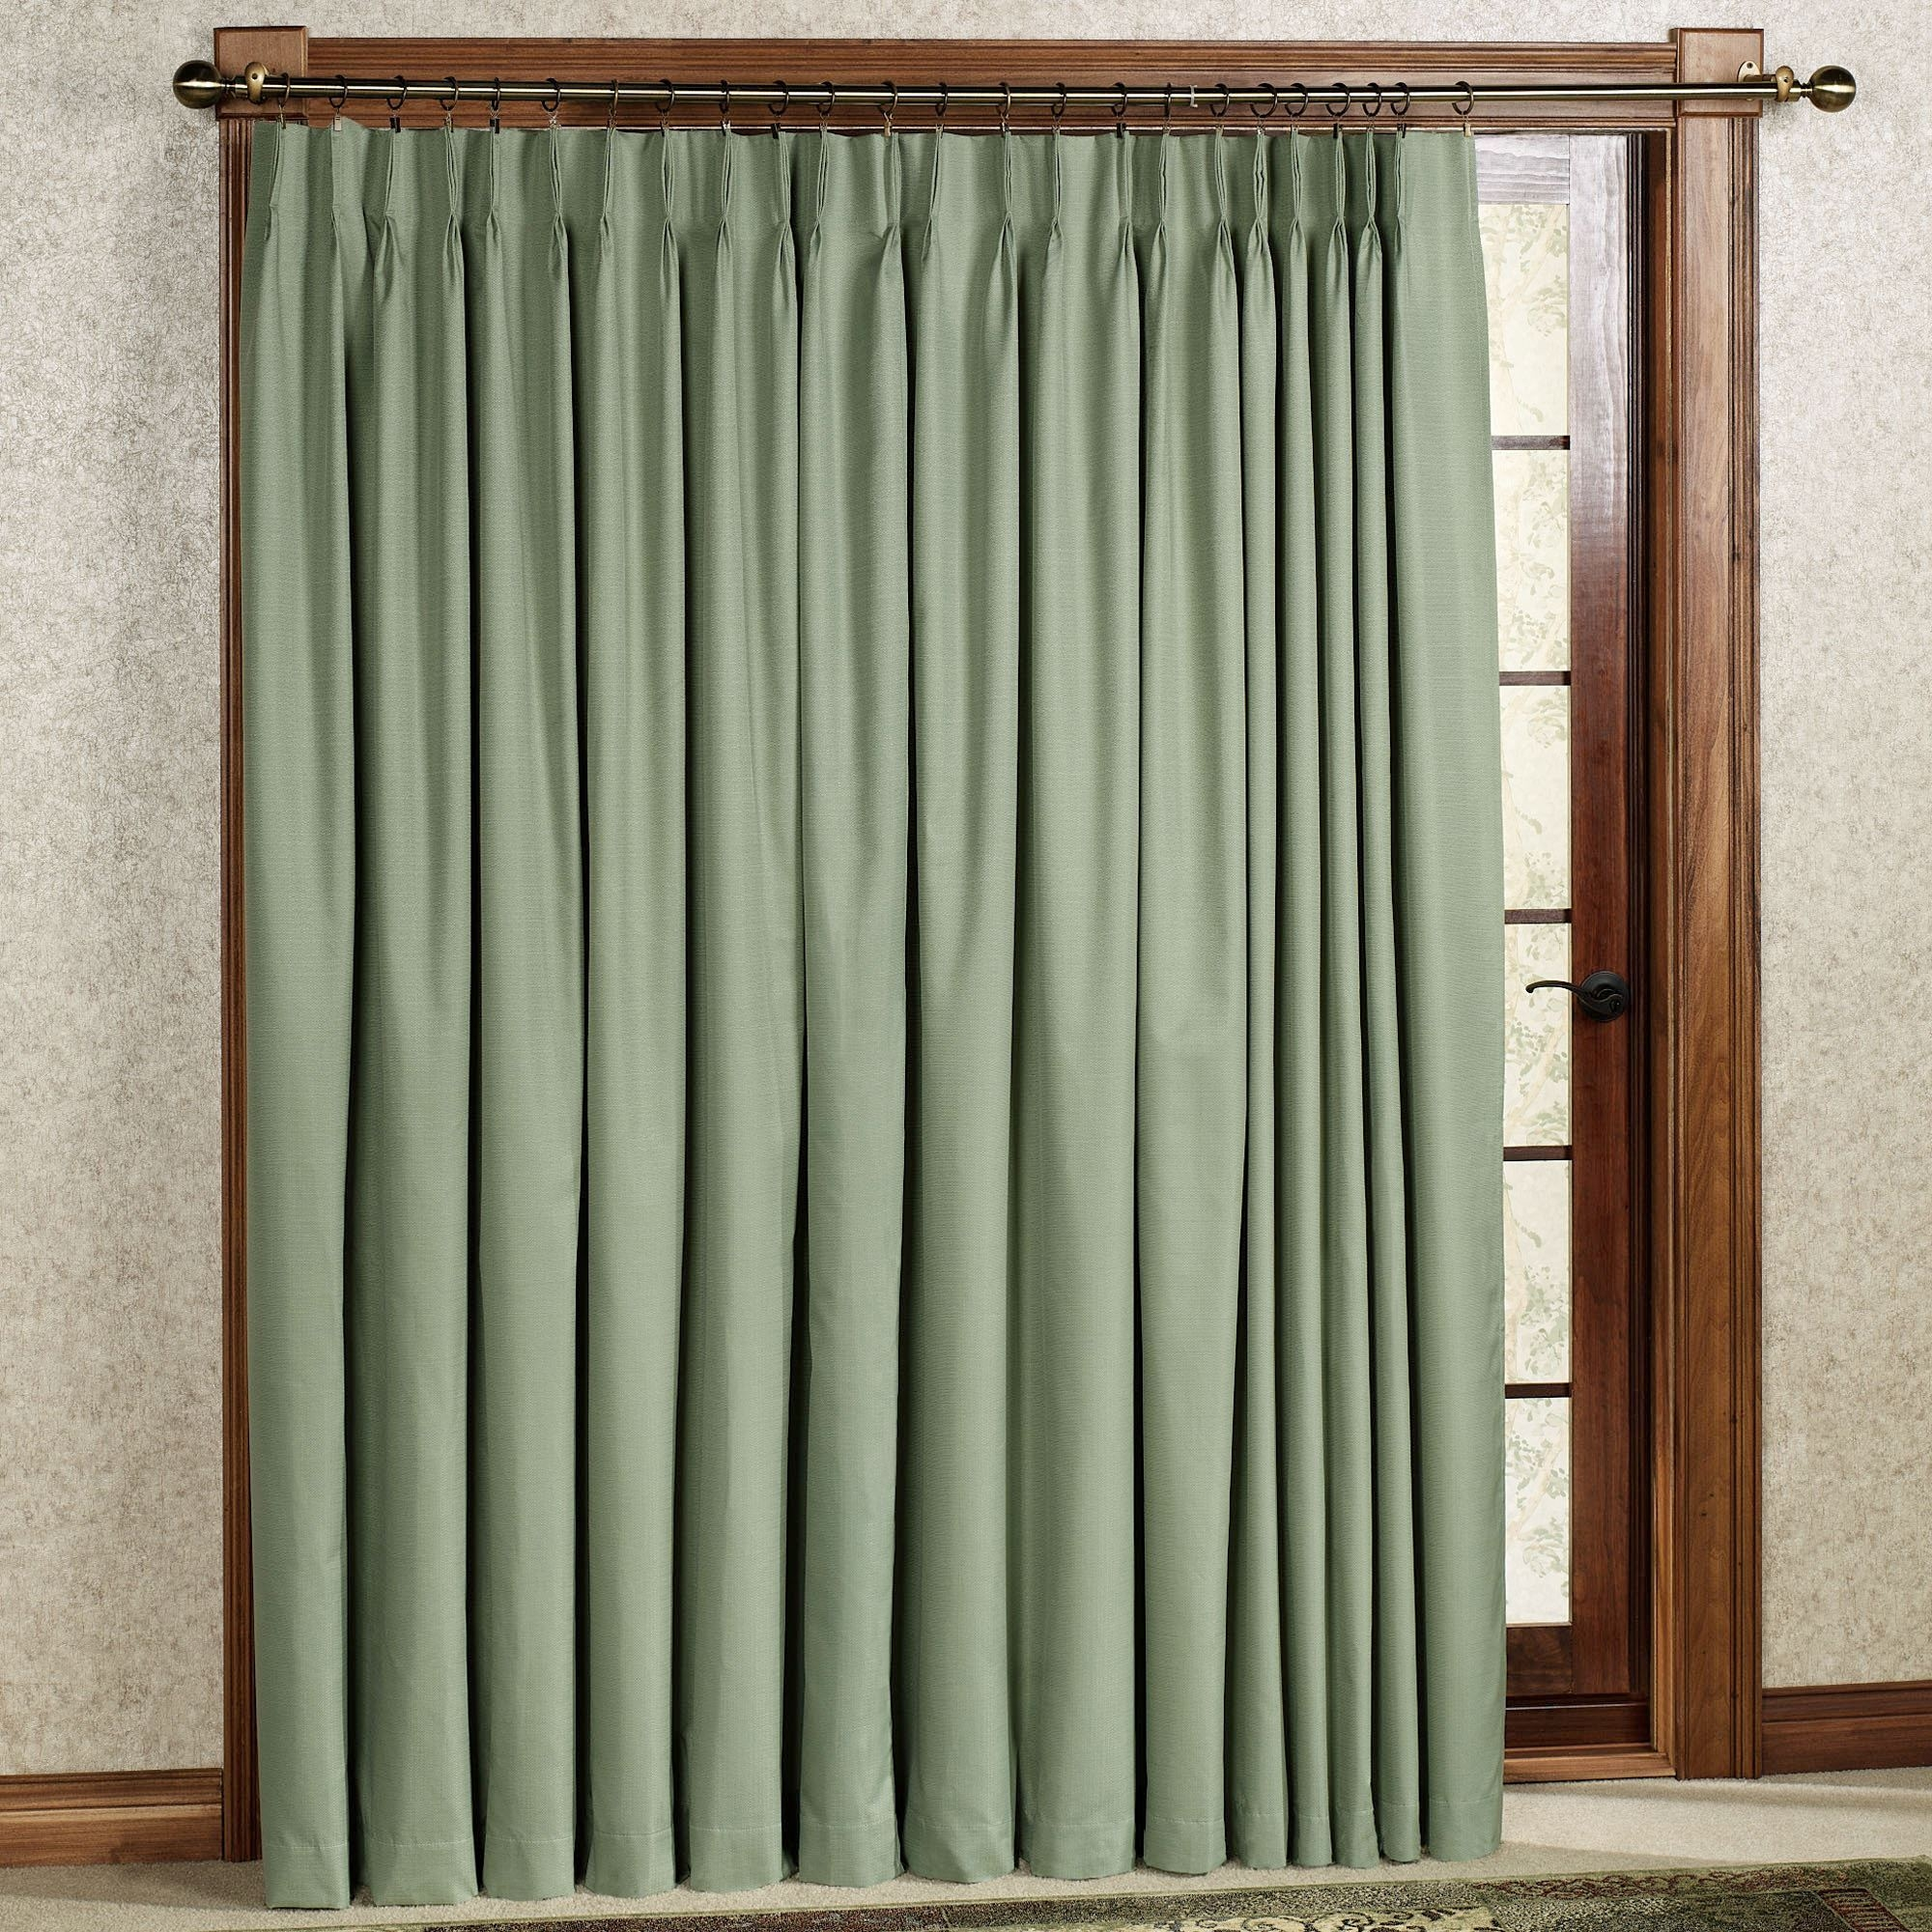 Cros Pinch Pleat Thermal Room Darkening Patio Panel With Thermal Door Curtain (View 12 of 15)